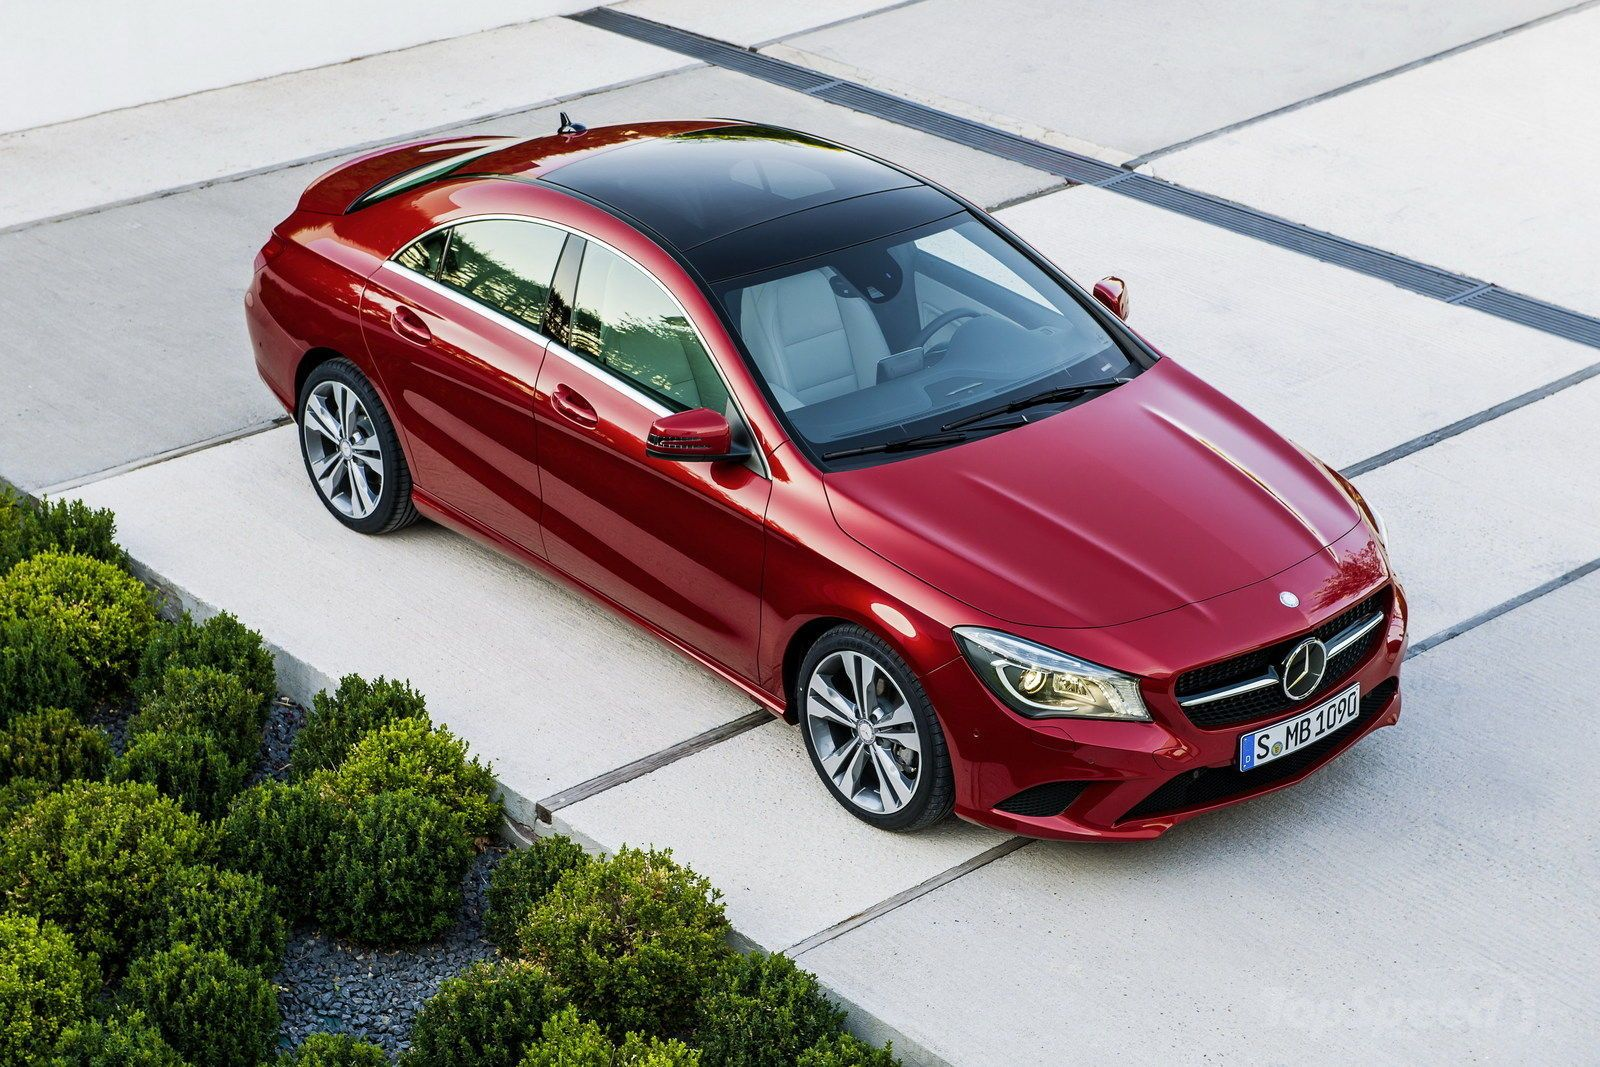 2014 2015 Mercedes Cla Class Pictures Photos Wallpapers And